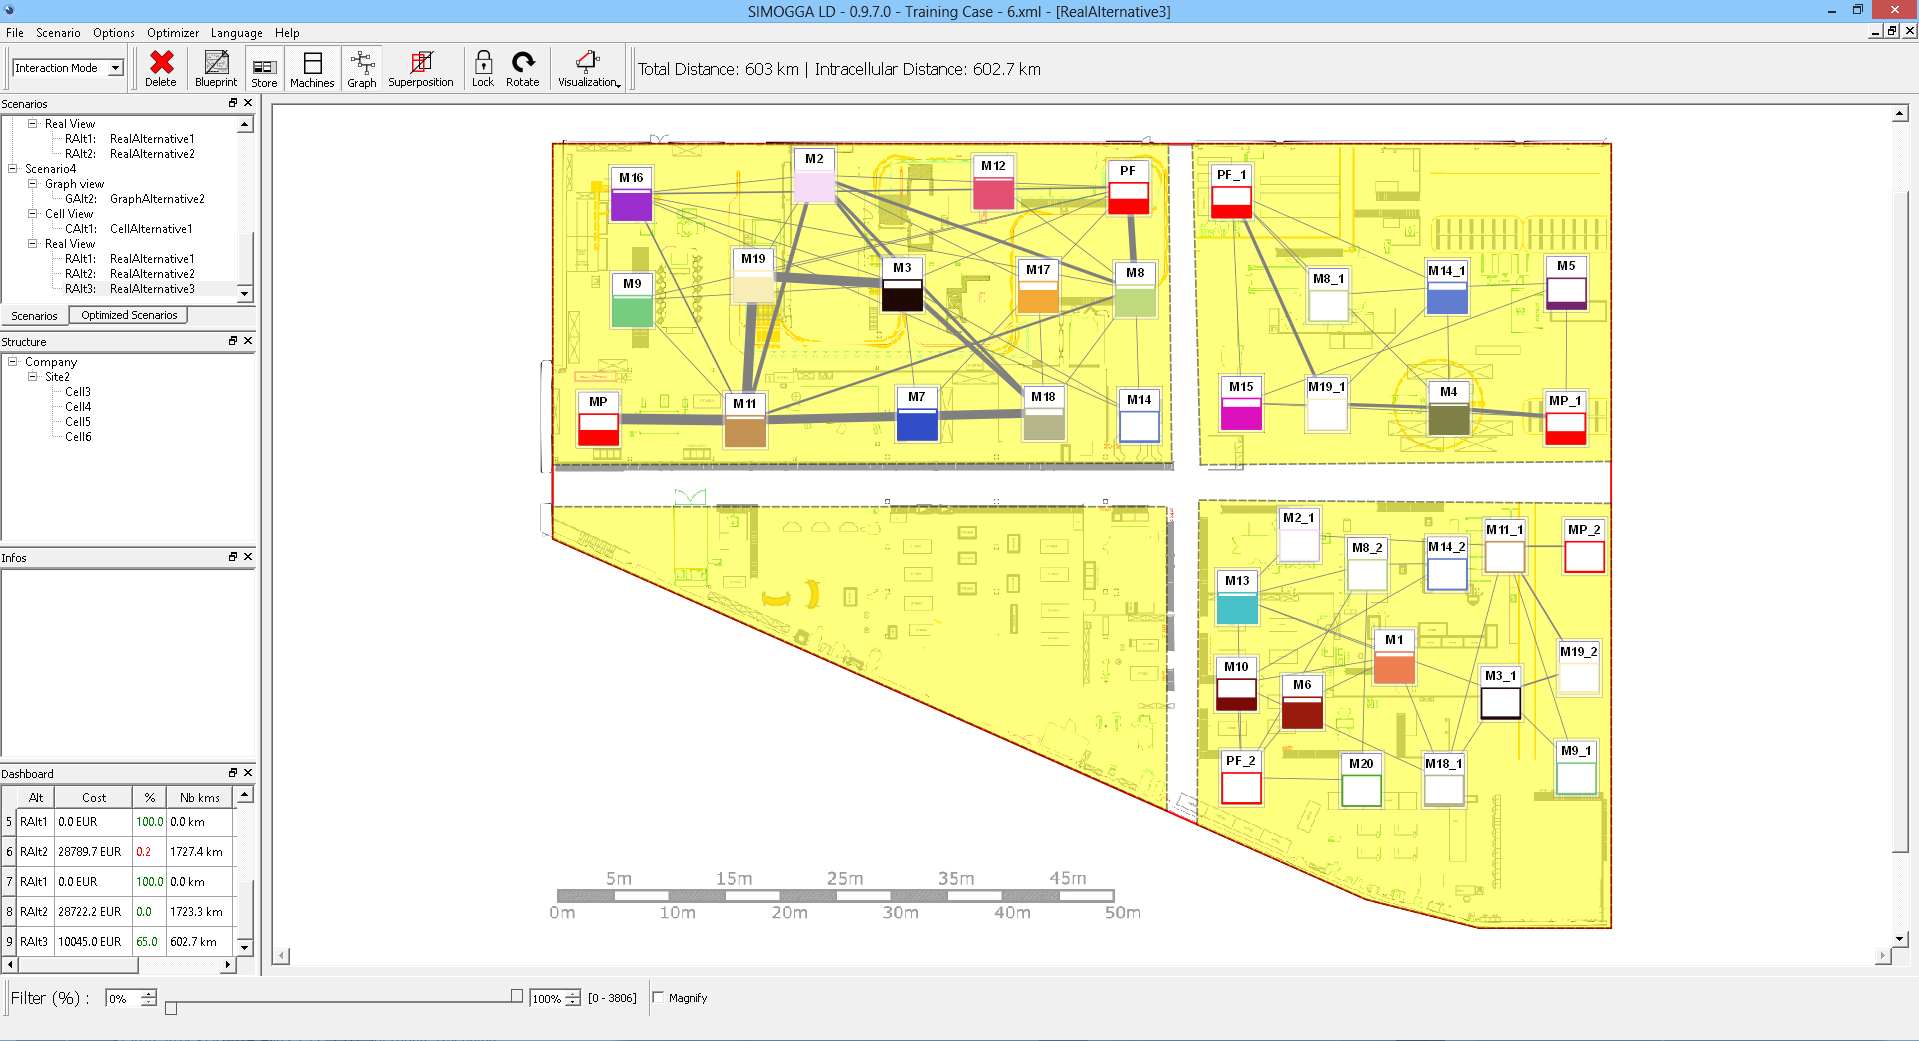 SIMOGGA - Revise and Optimise your factory and maintenance site layout